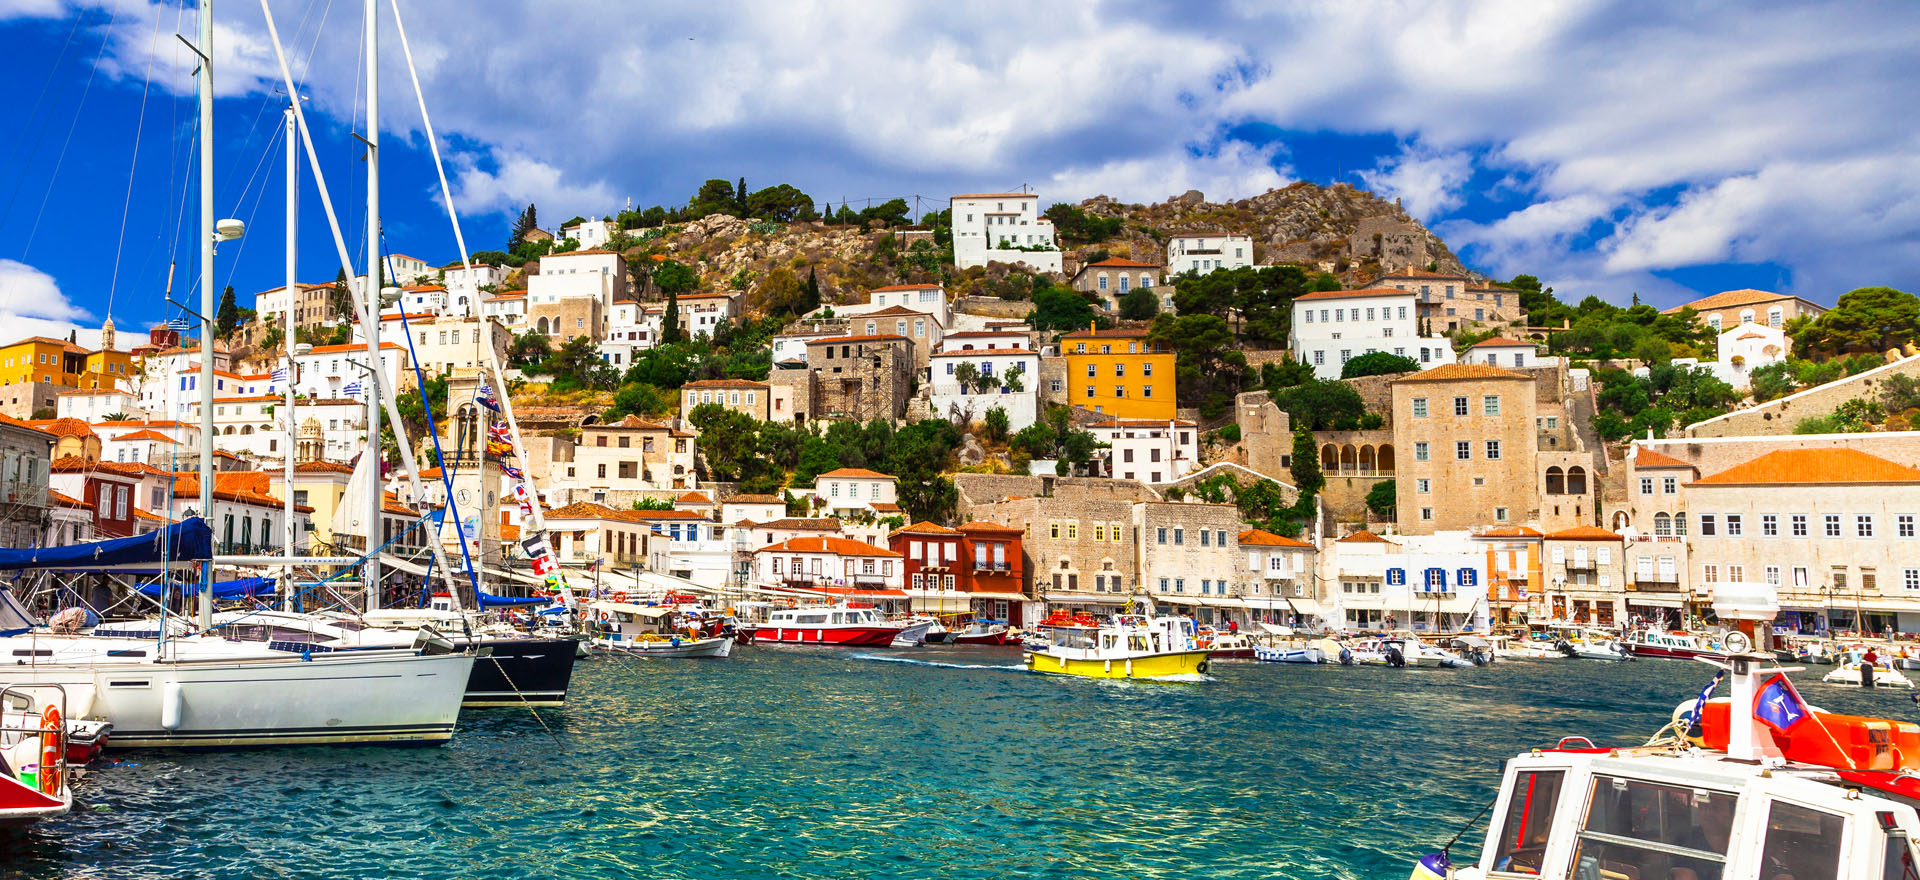 Colourful houses and boats on Hydra Island